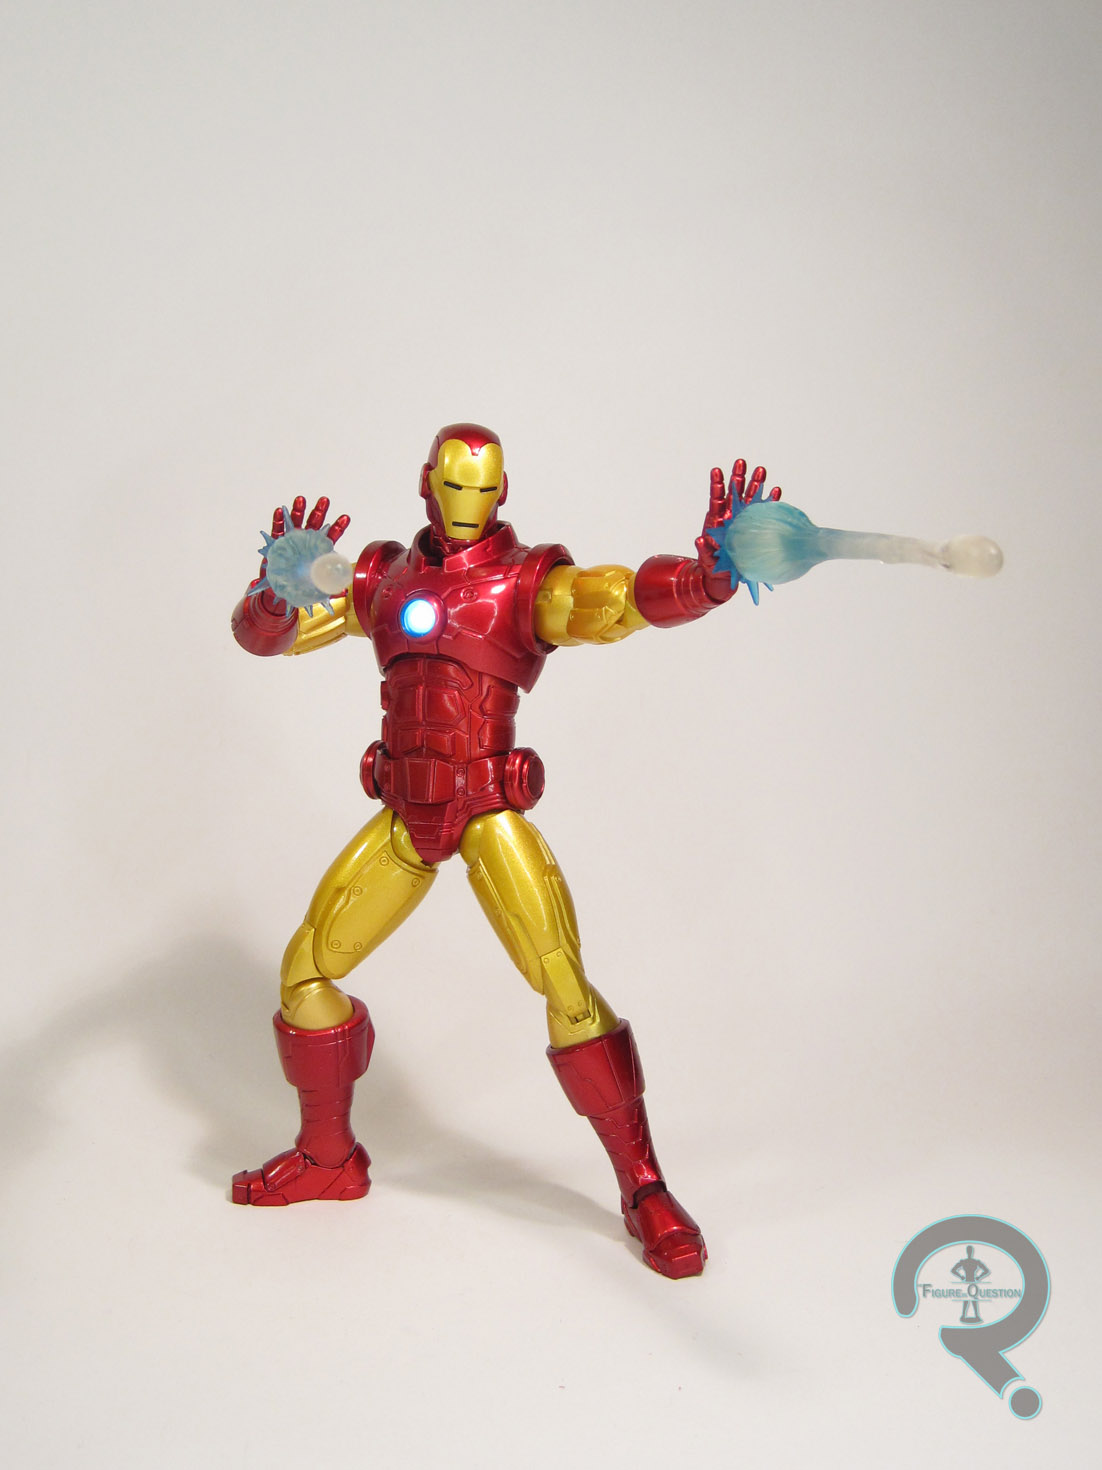 1940: Iron Man | The Figure In Question